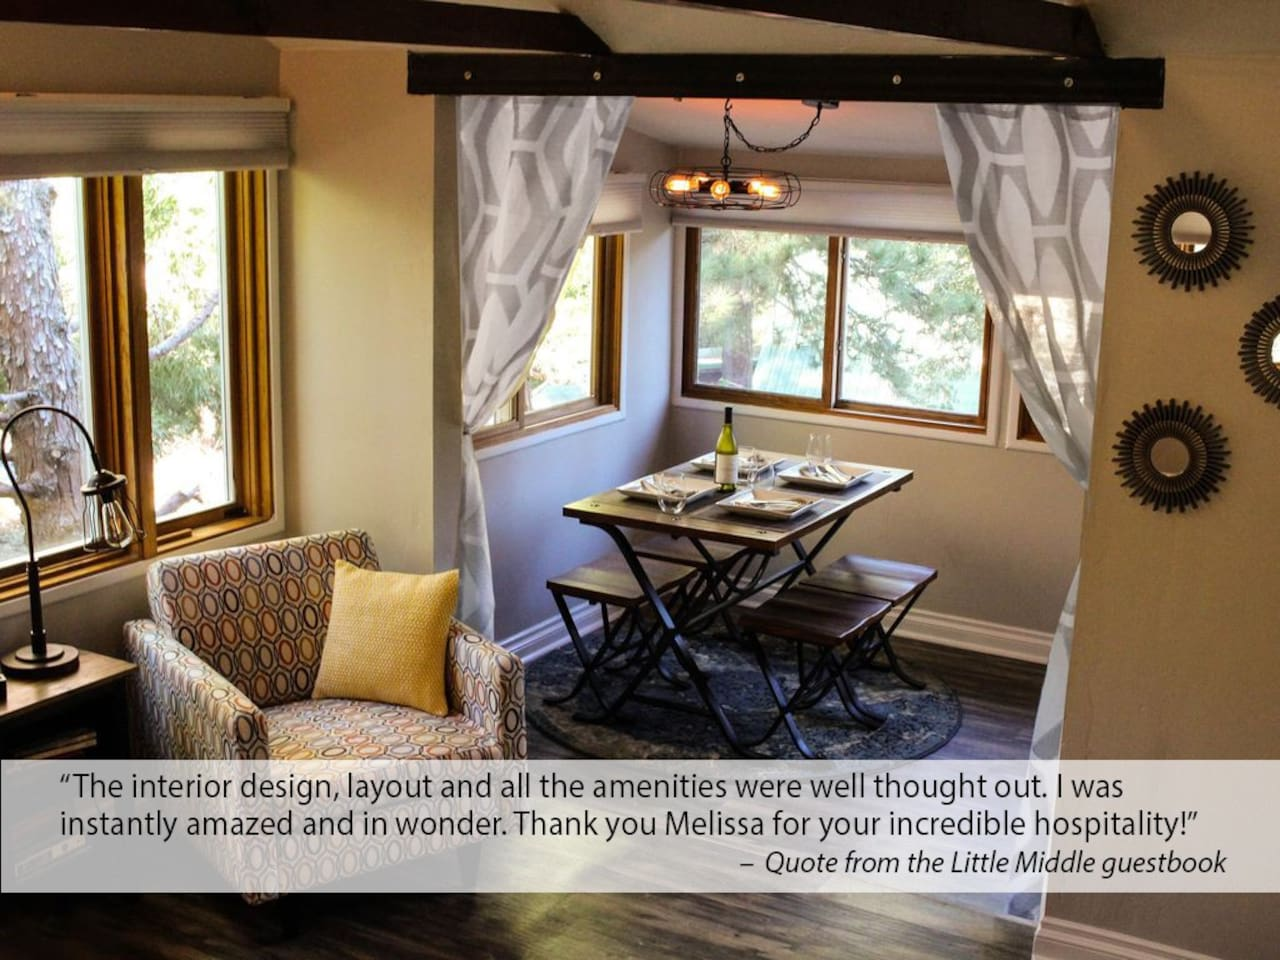 Welcome to your home away from home! My homes give you a 5 star experience. Just read the awesome reviews!